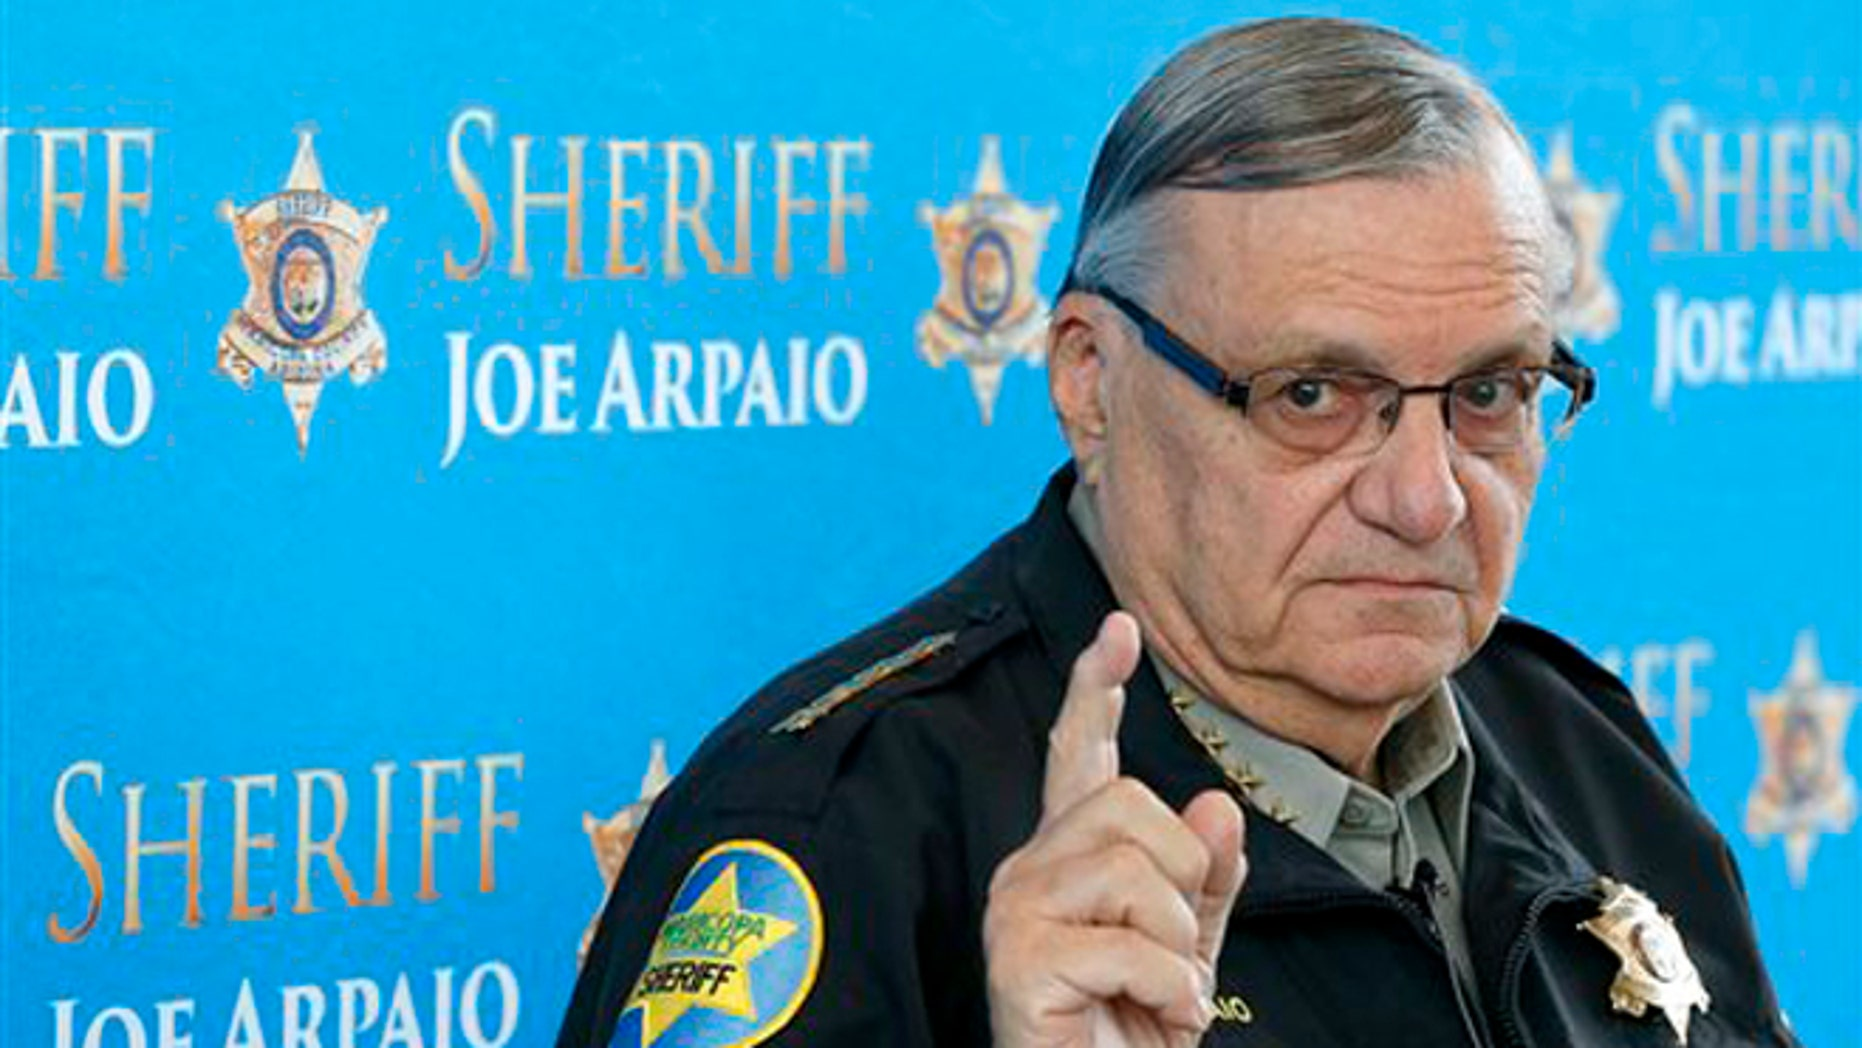 FILE - In this Dec. 18, 2013 file photo, Maricopa County Sheriff Joe Arpaio pauses as he answers a question at a news conference at Maricopa County Sheriff's Office Headquarters, in Phoenix.  A judge presiding over a racial profiling case against Arpaio's office is holding a hearing Wednesday, May 7, 2014, to examine whether people working for the agency have read a summary of the case's key findings. (AP Photo/Ross D. Franklin, file)